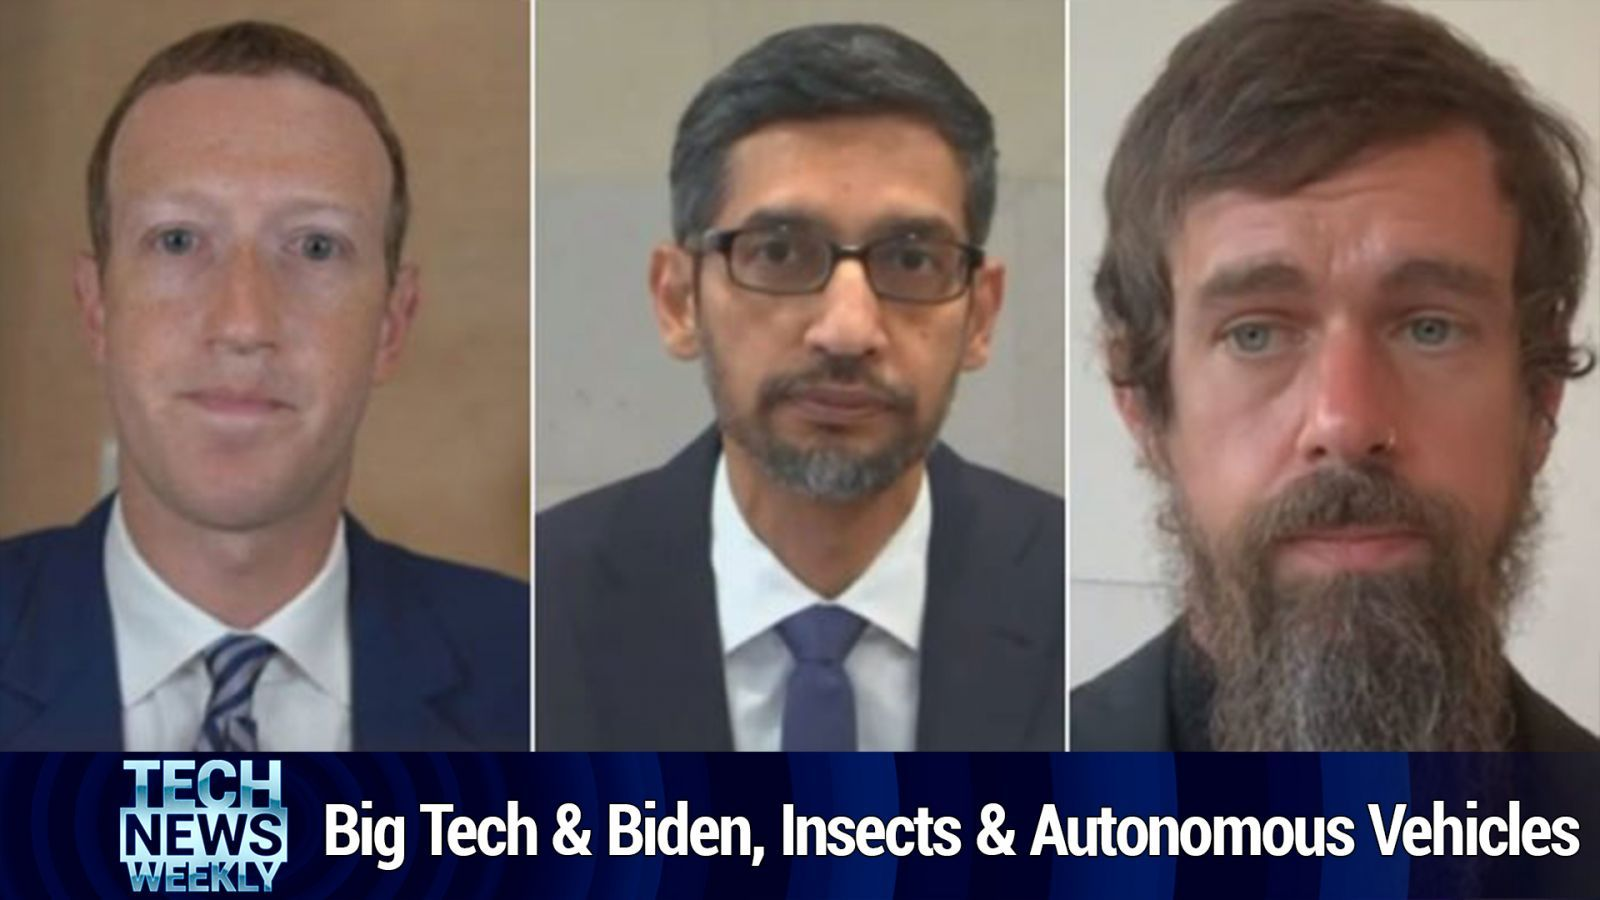 Biden and Big Tech, the Insect Impact Effect on Autonomous Vehicles